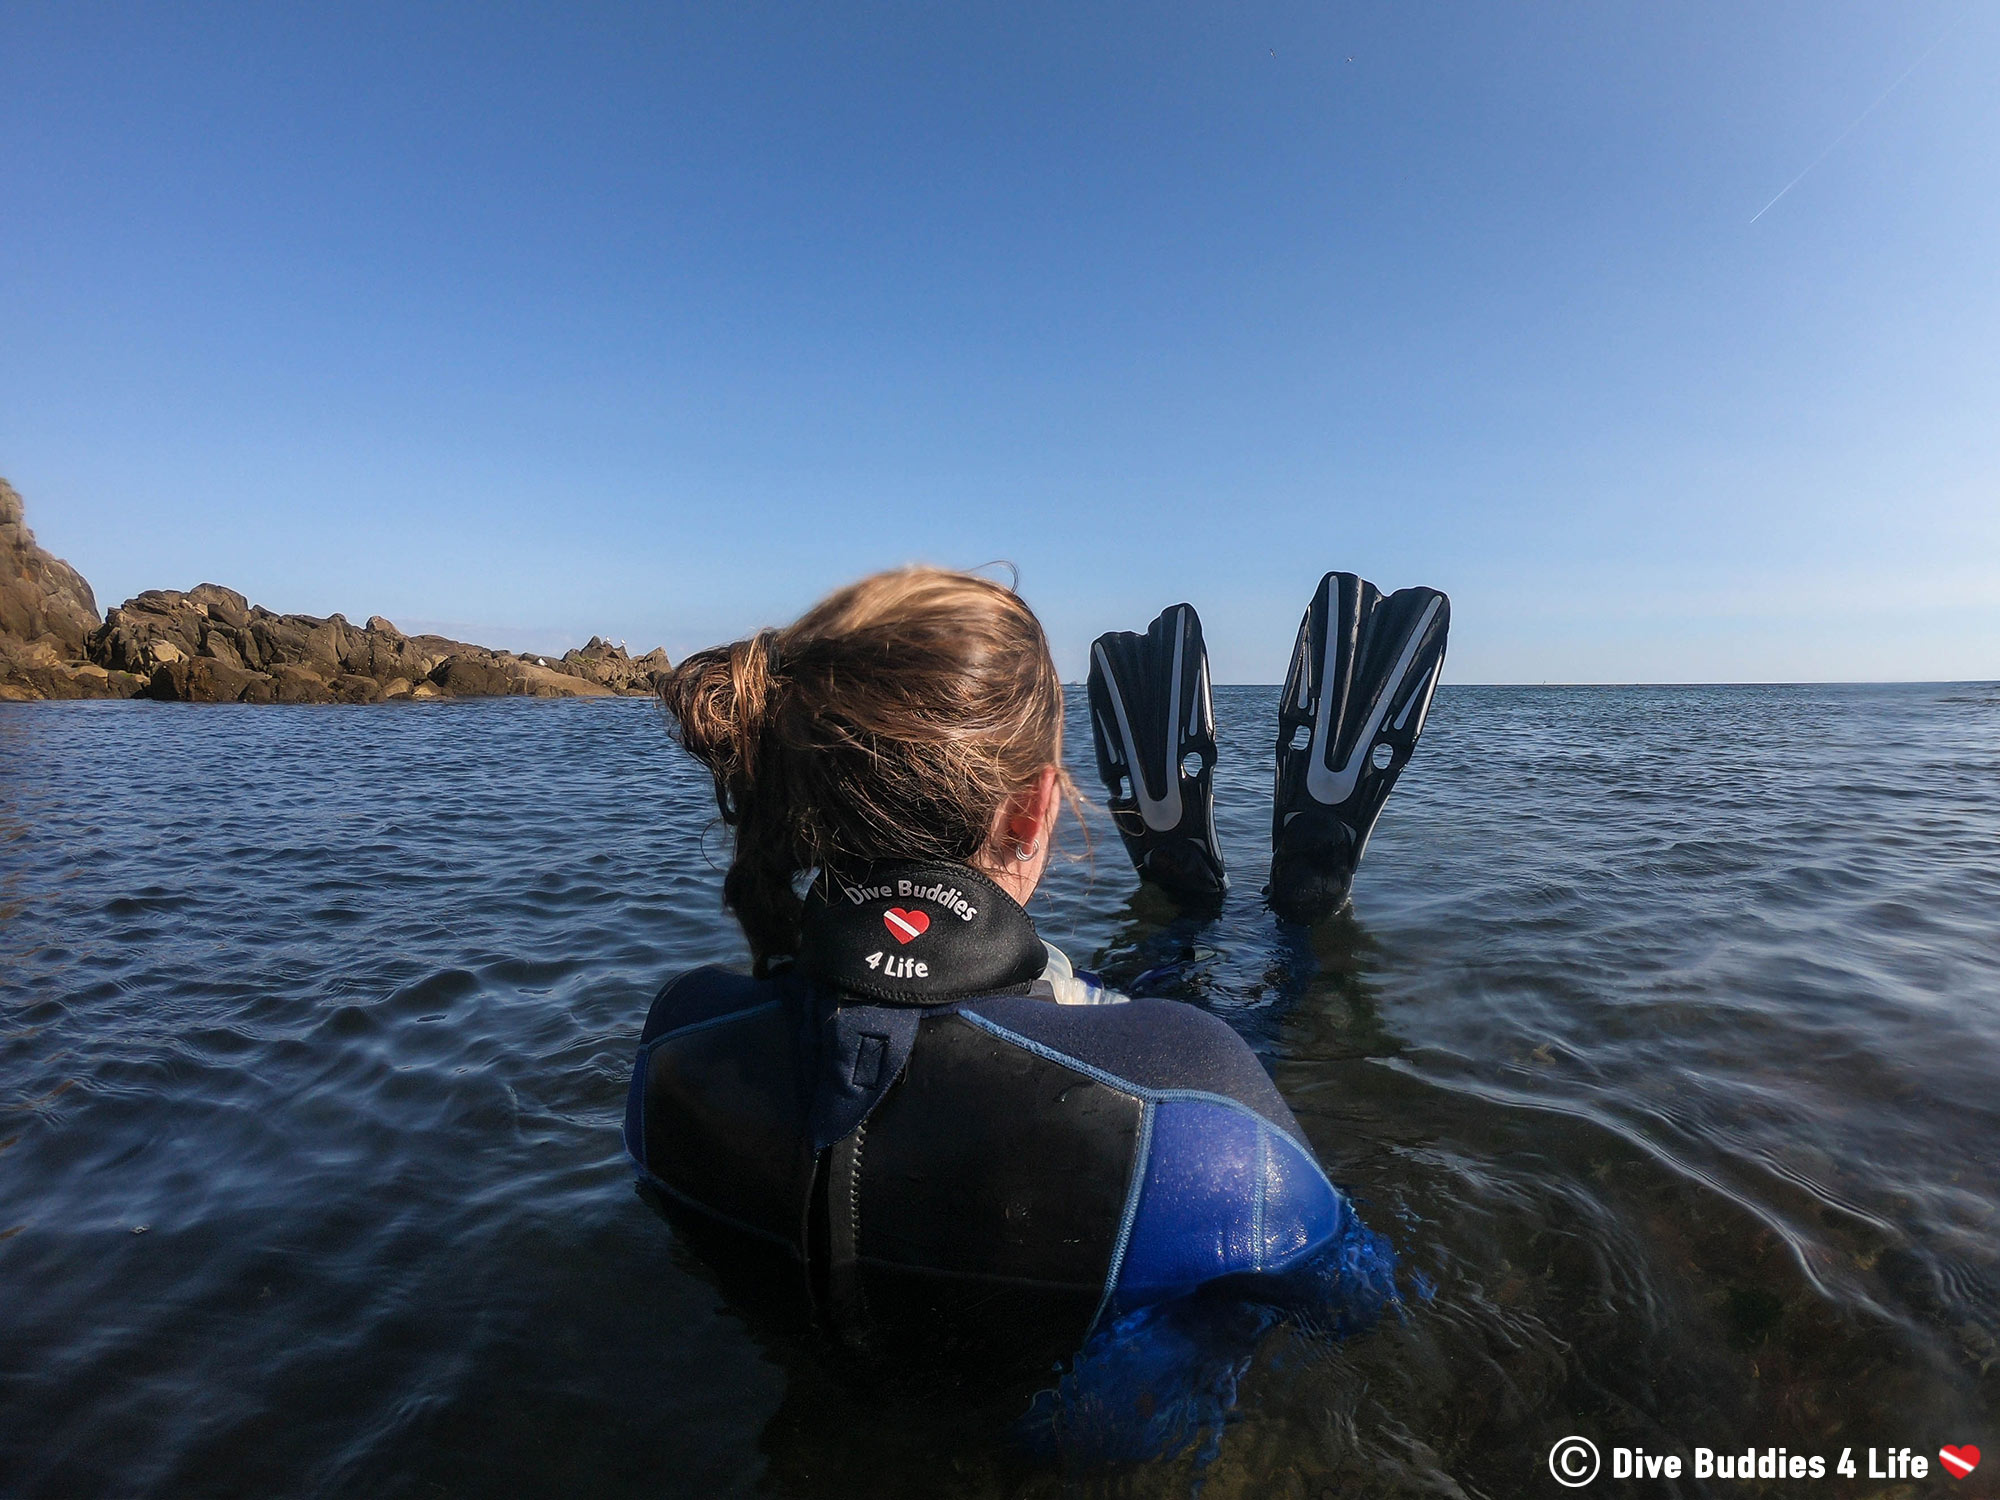 Ali Floating In The Cold Water Of France In Her Snorkeling Gear